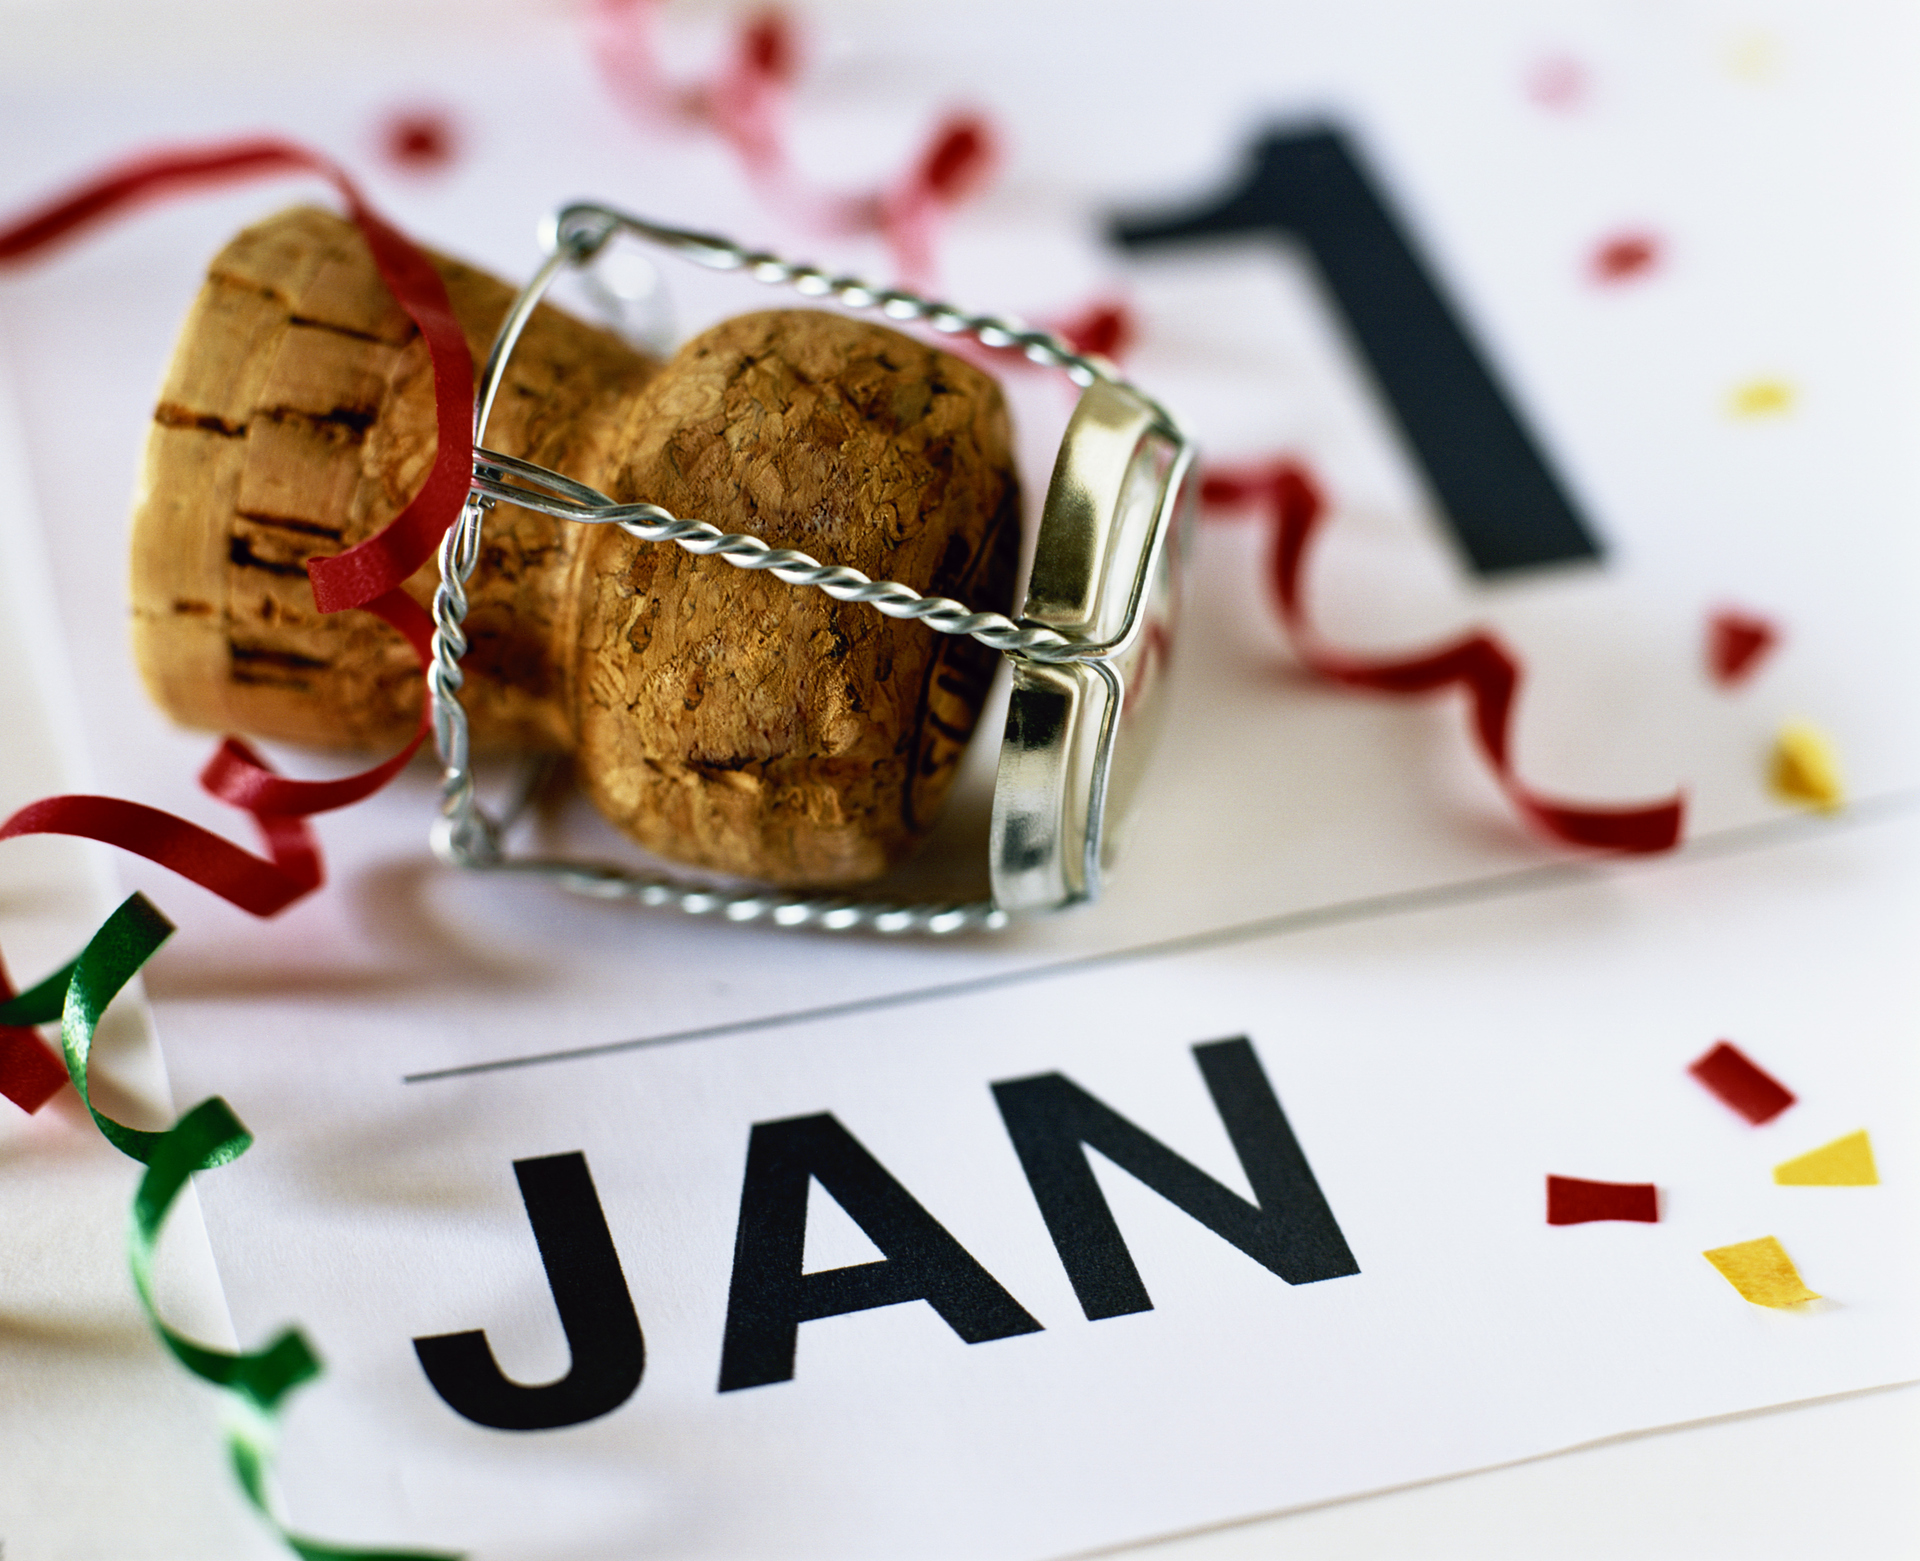 Calendar labeled January 1 with champagne cork and confetti on it.